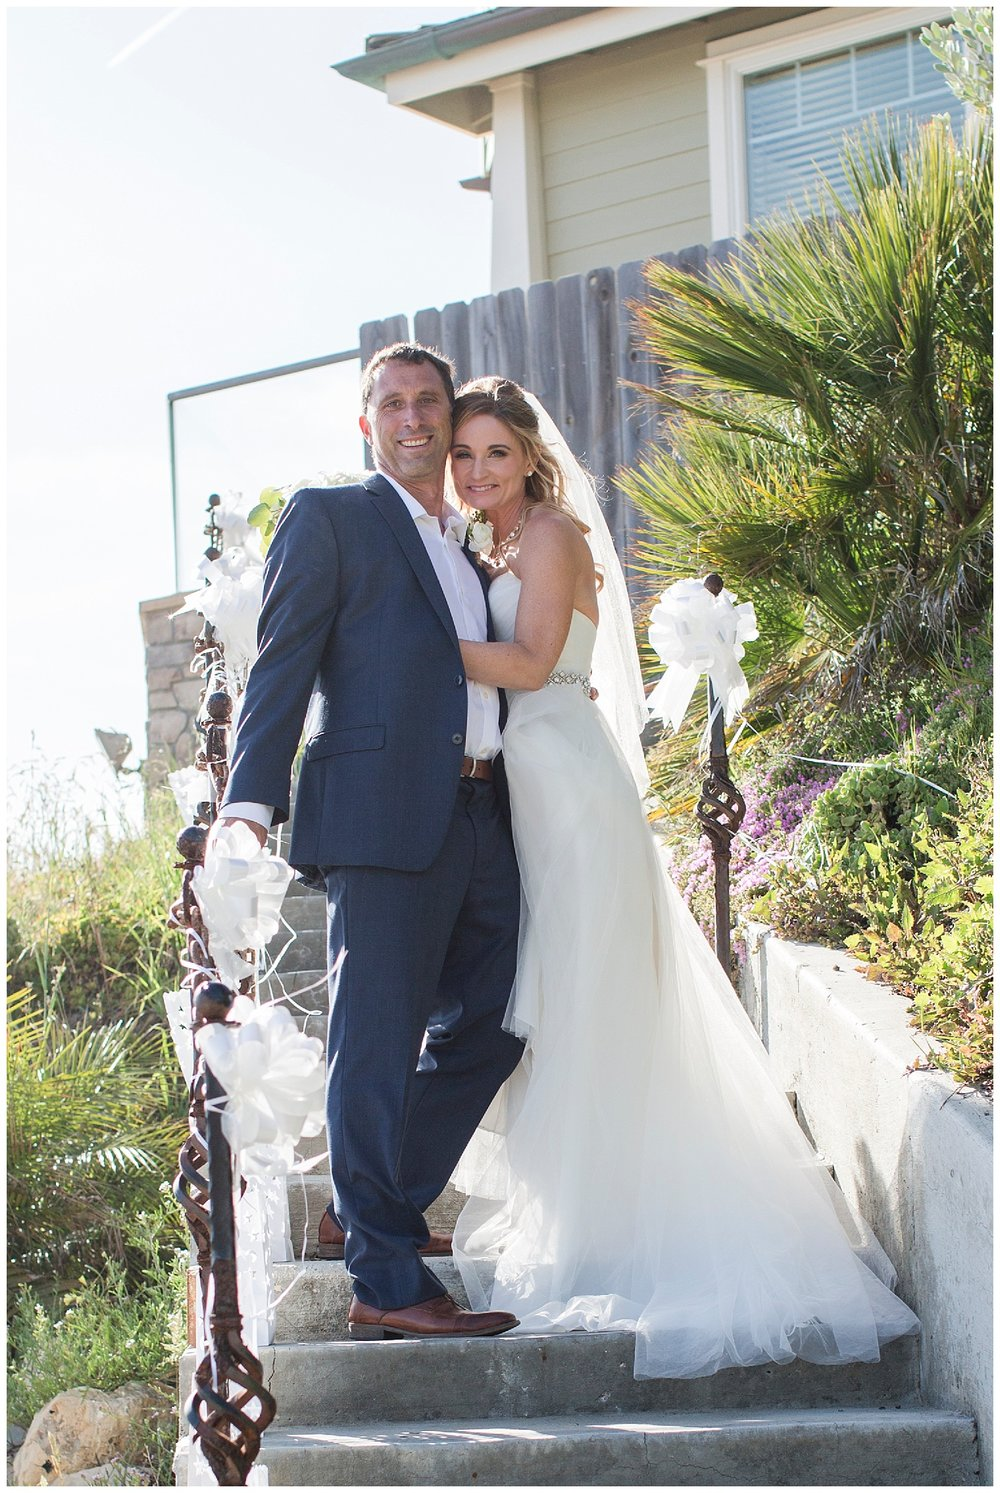 Malzone wedding_Beach wedding_Renoda Campbell Photography-6054.jpg